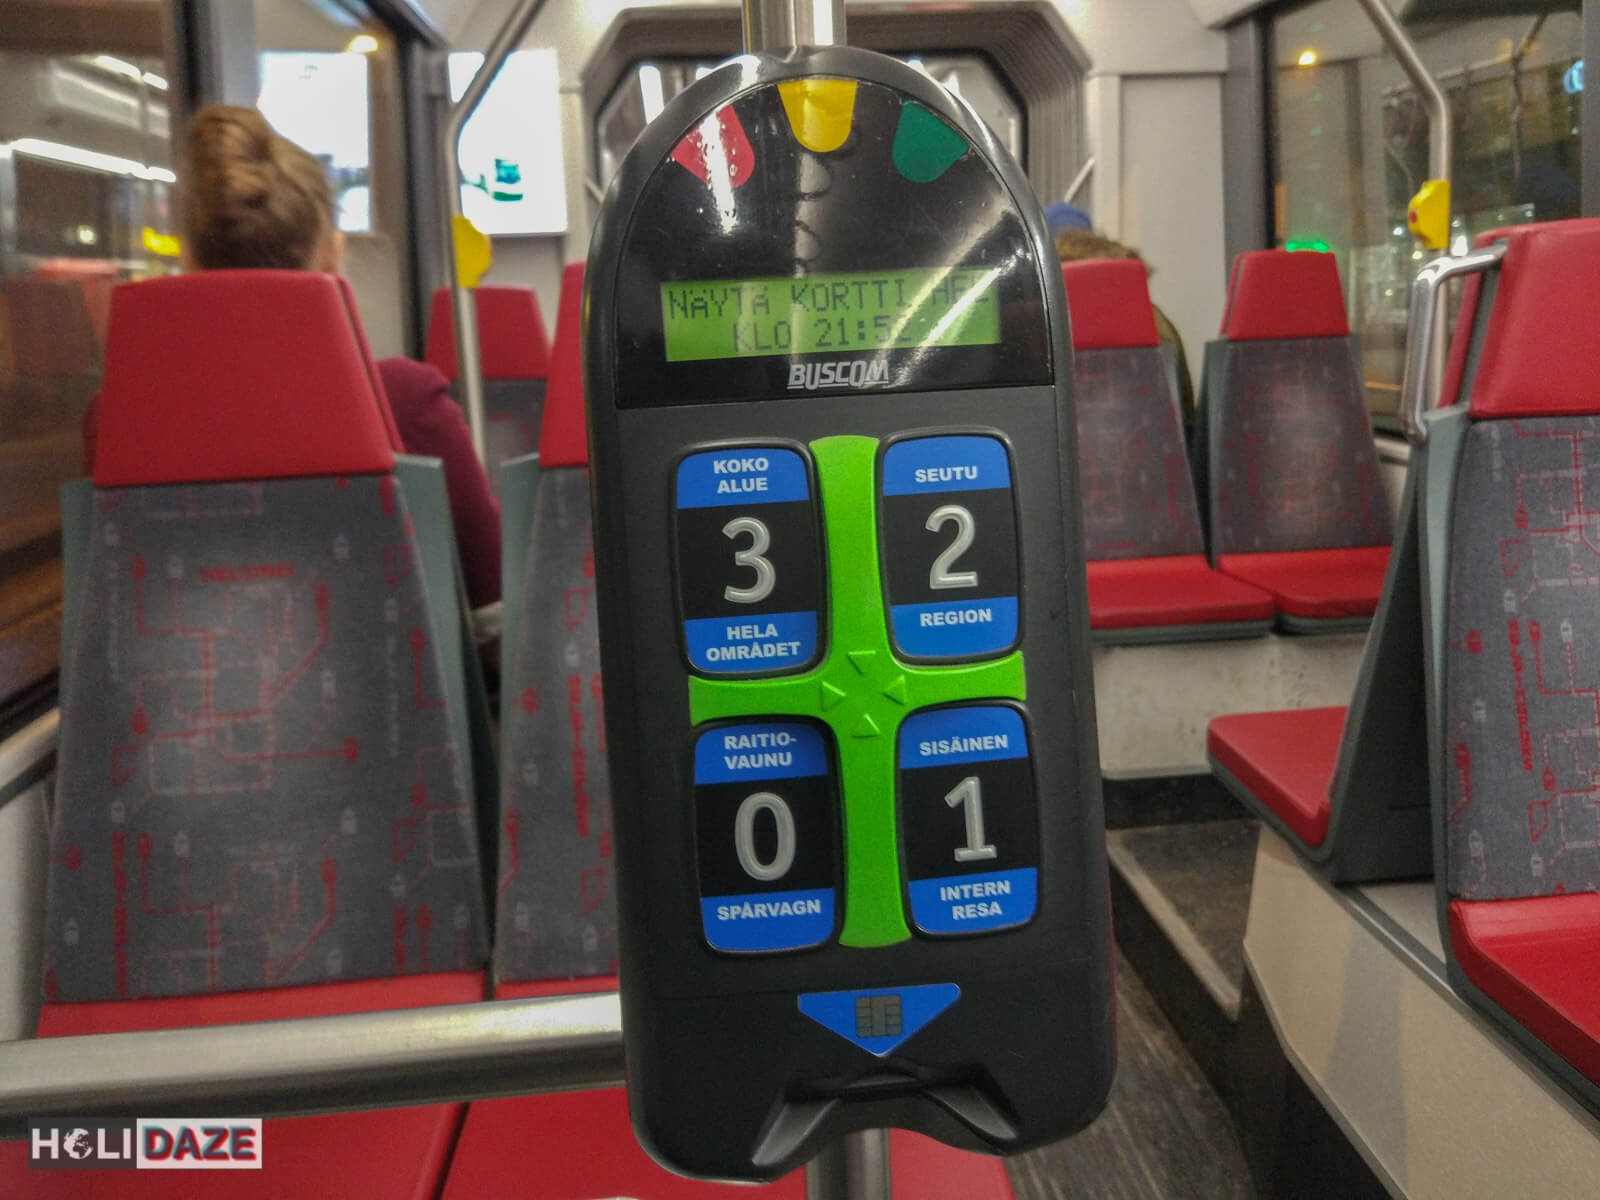 Ticket reader aboard a tram in Helsinki, Finland